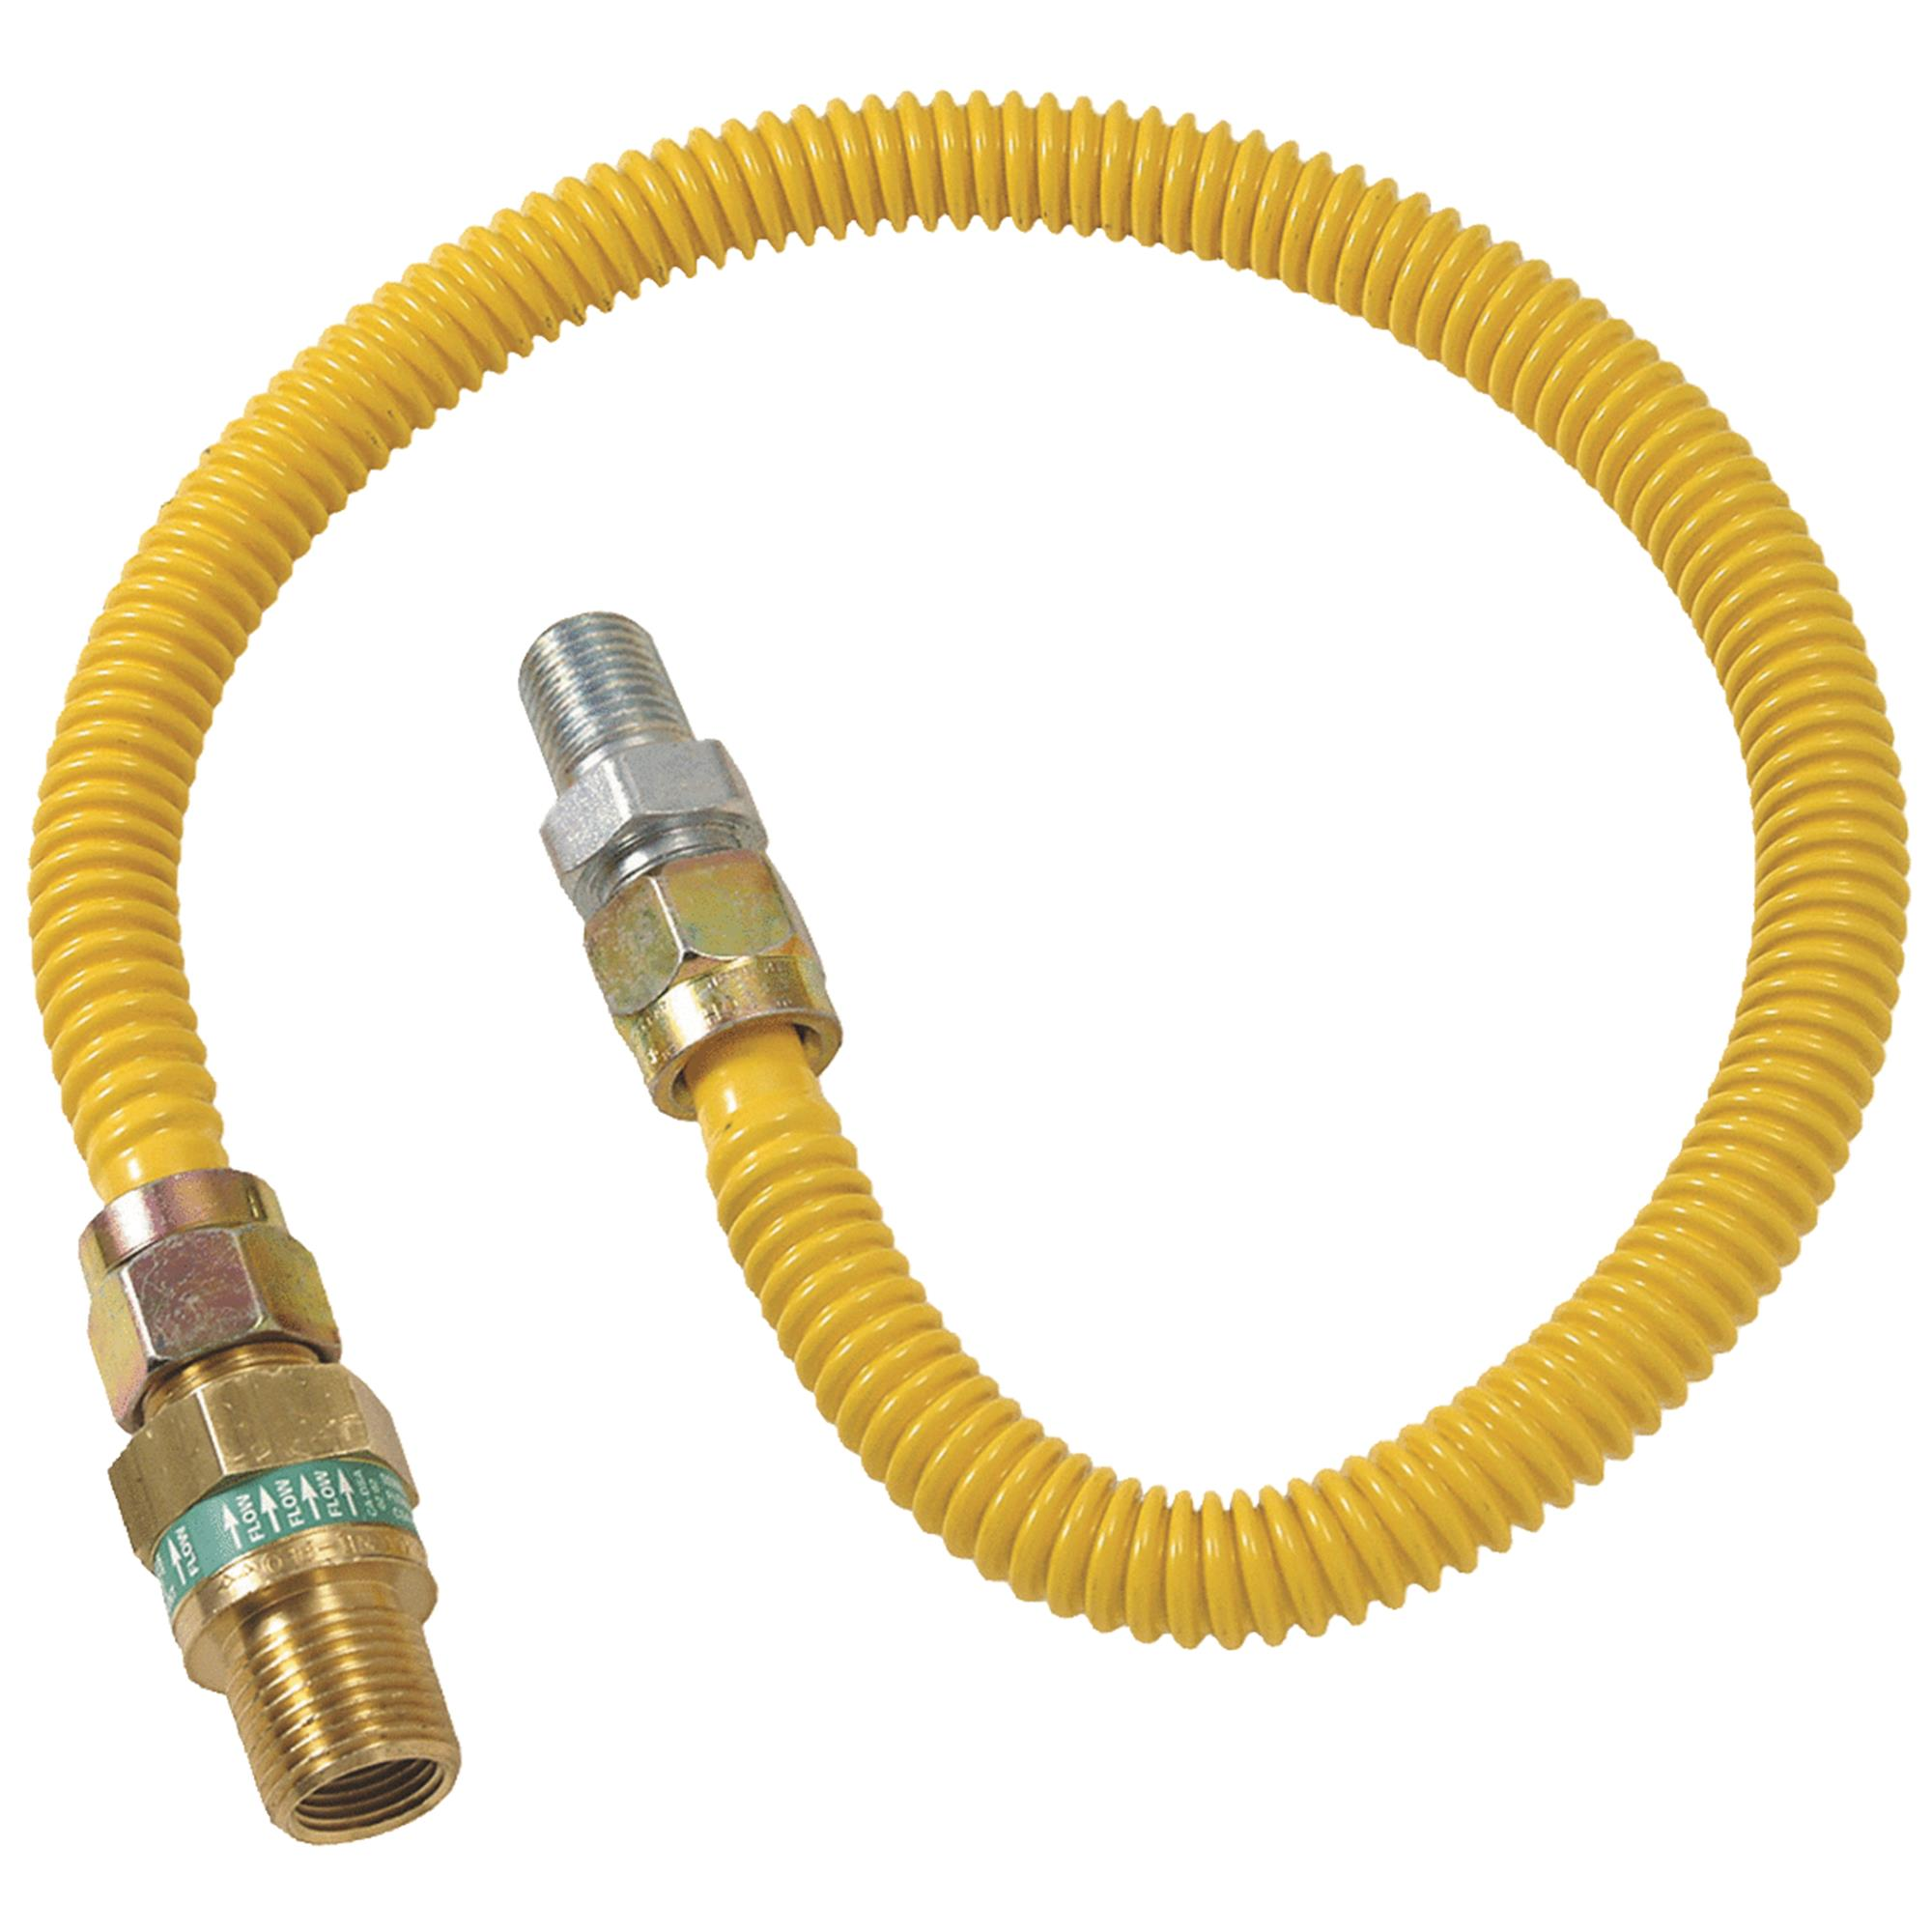 "1/2"" O.D. Gas Connector - 1/2"" M.I.P. Safety+PLUS x 1/2"" M.I.P."